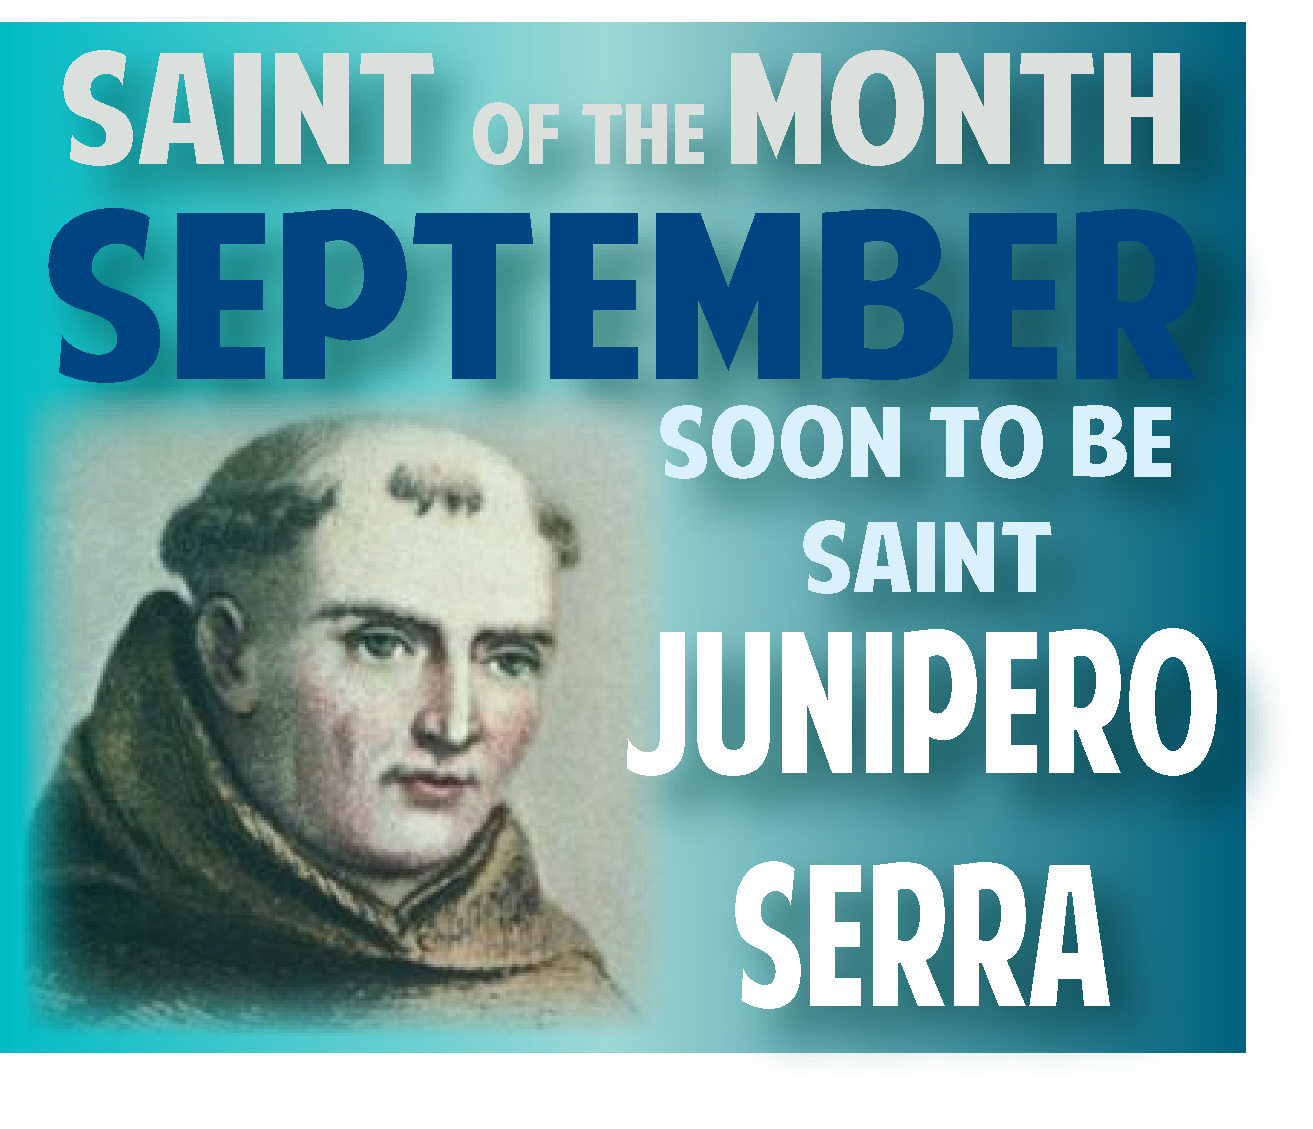 Saint of MonthSept